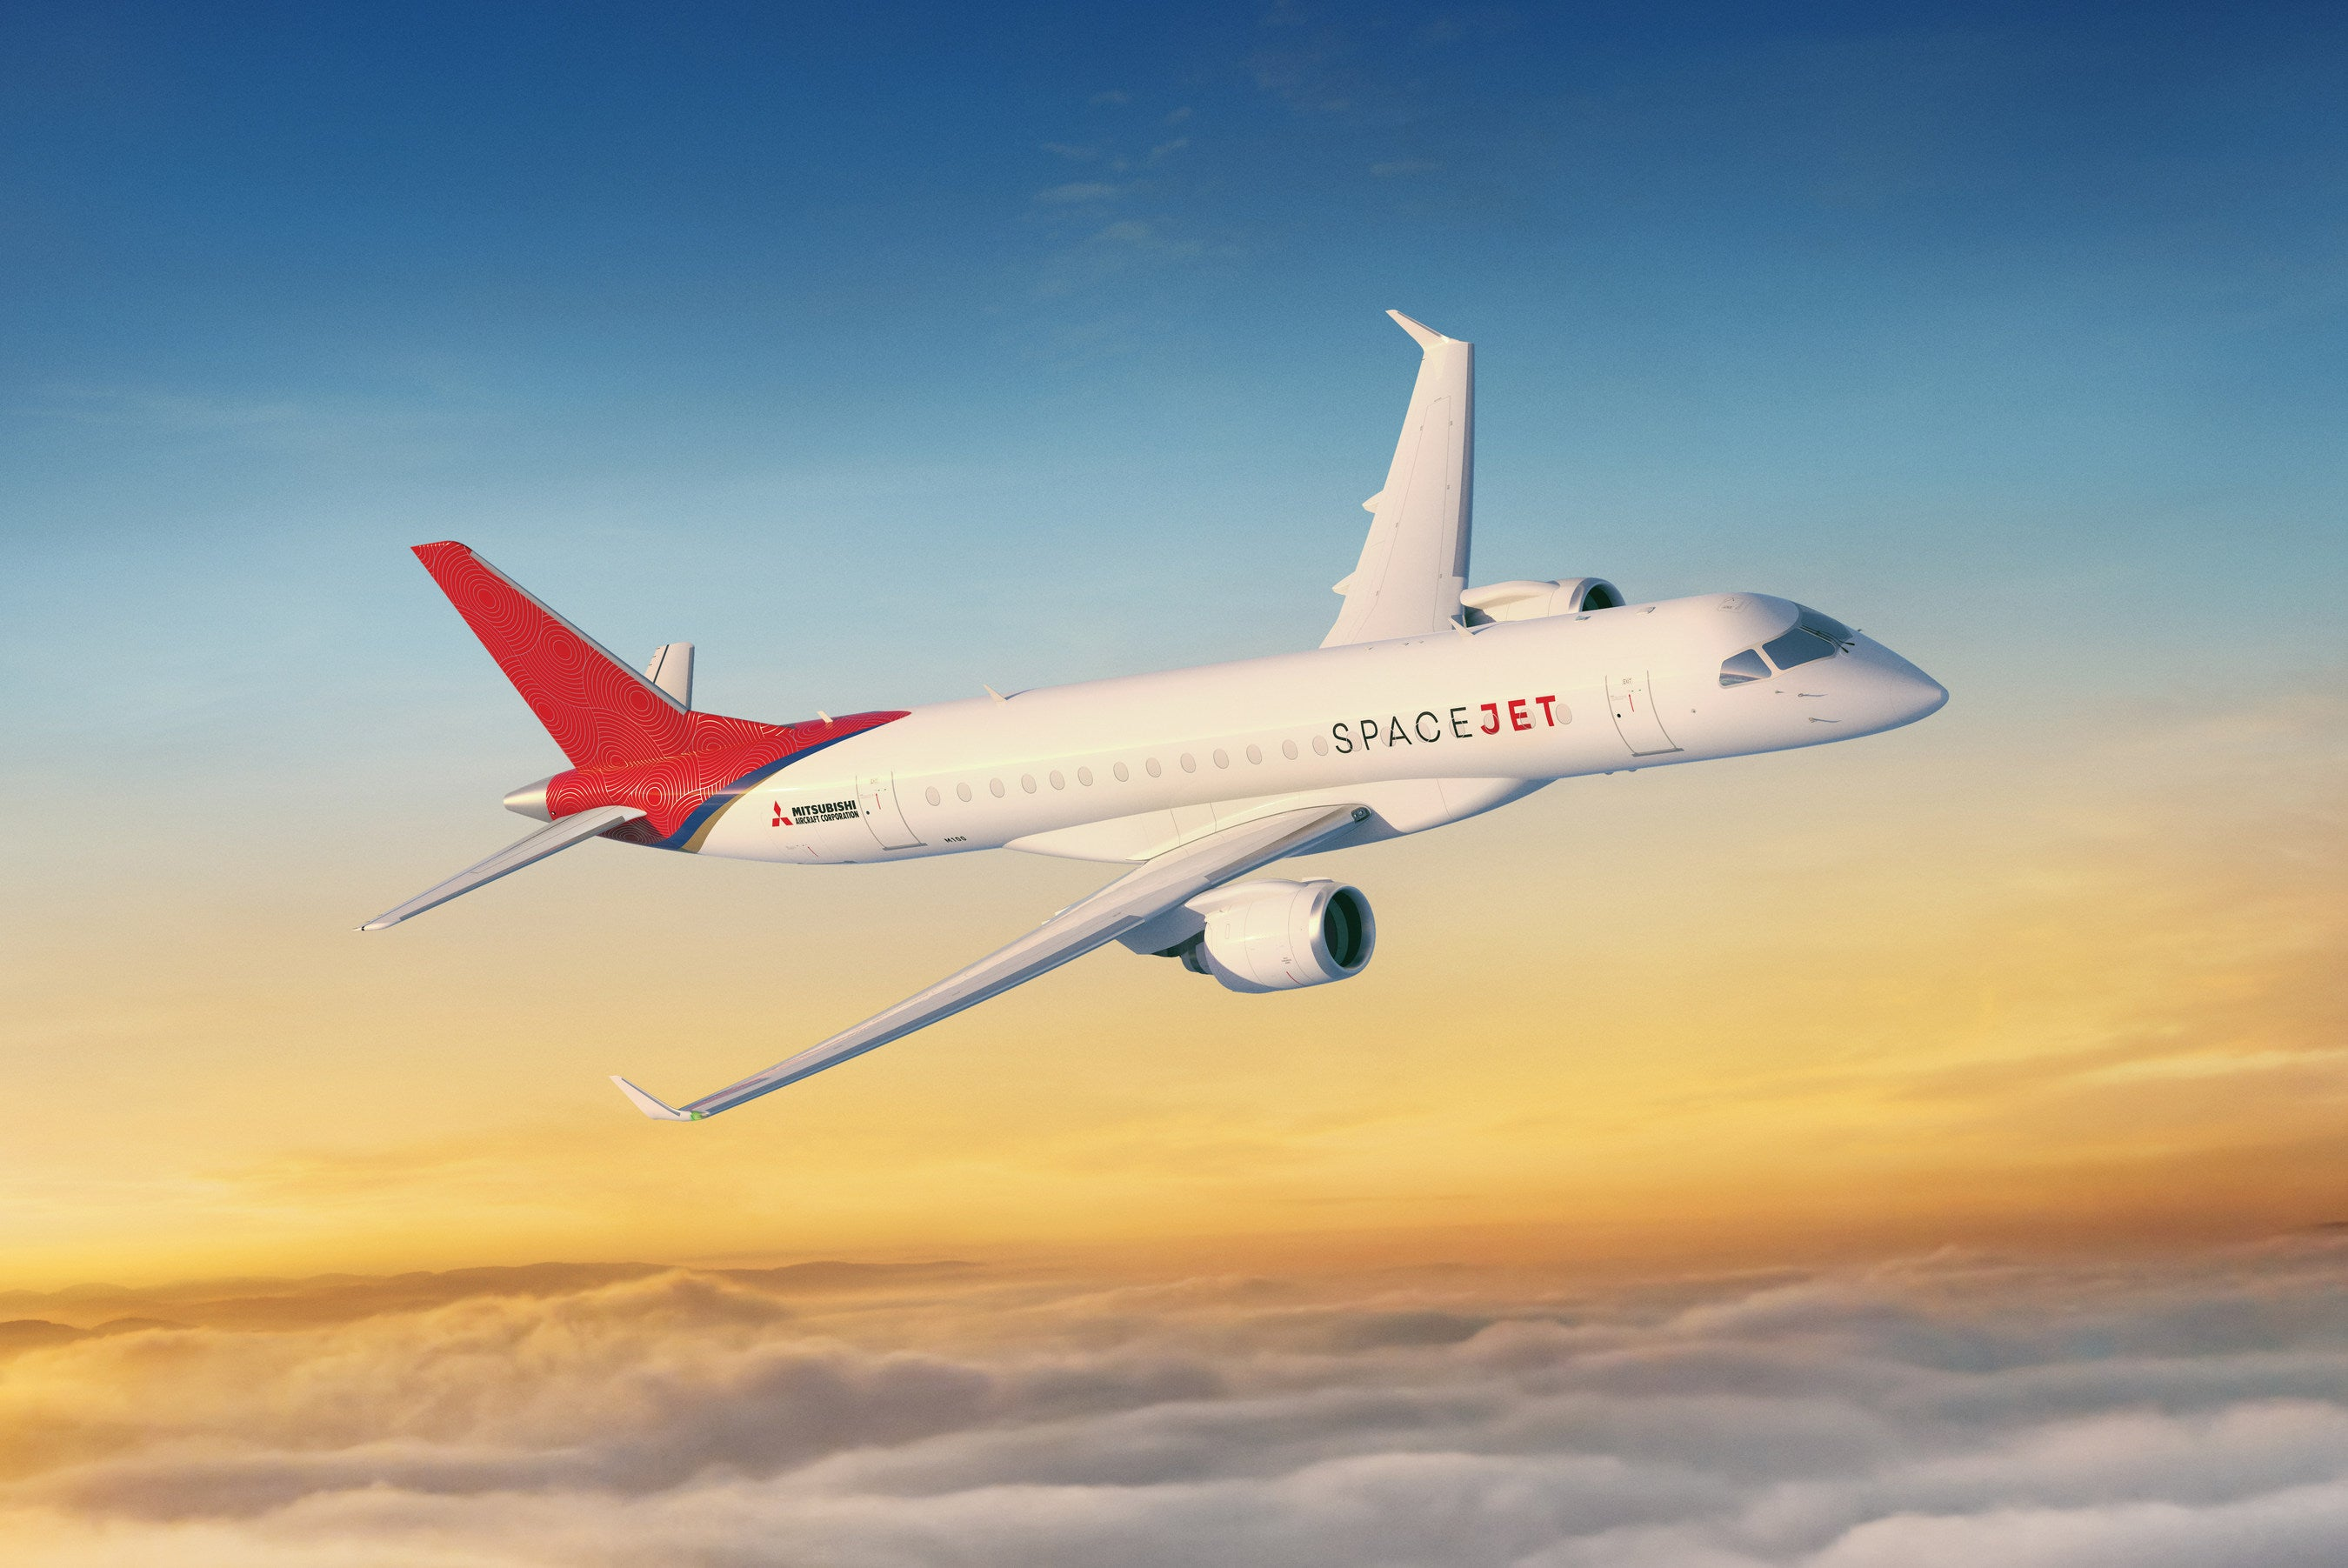 A rendering of a Mitsubishi SpaceJet flying over clouds